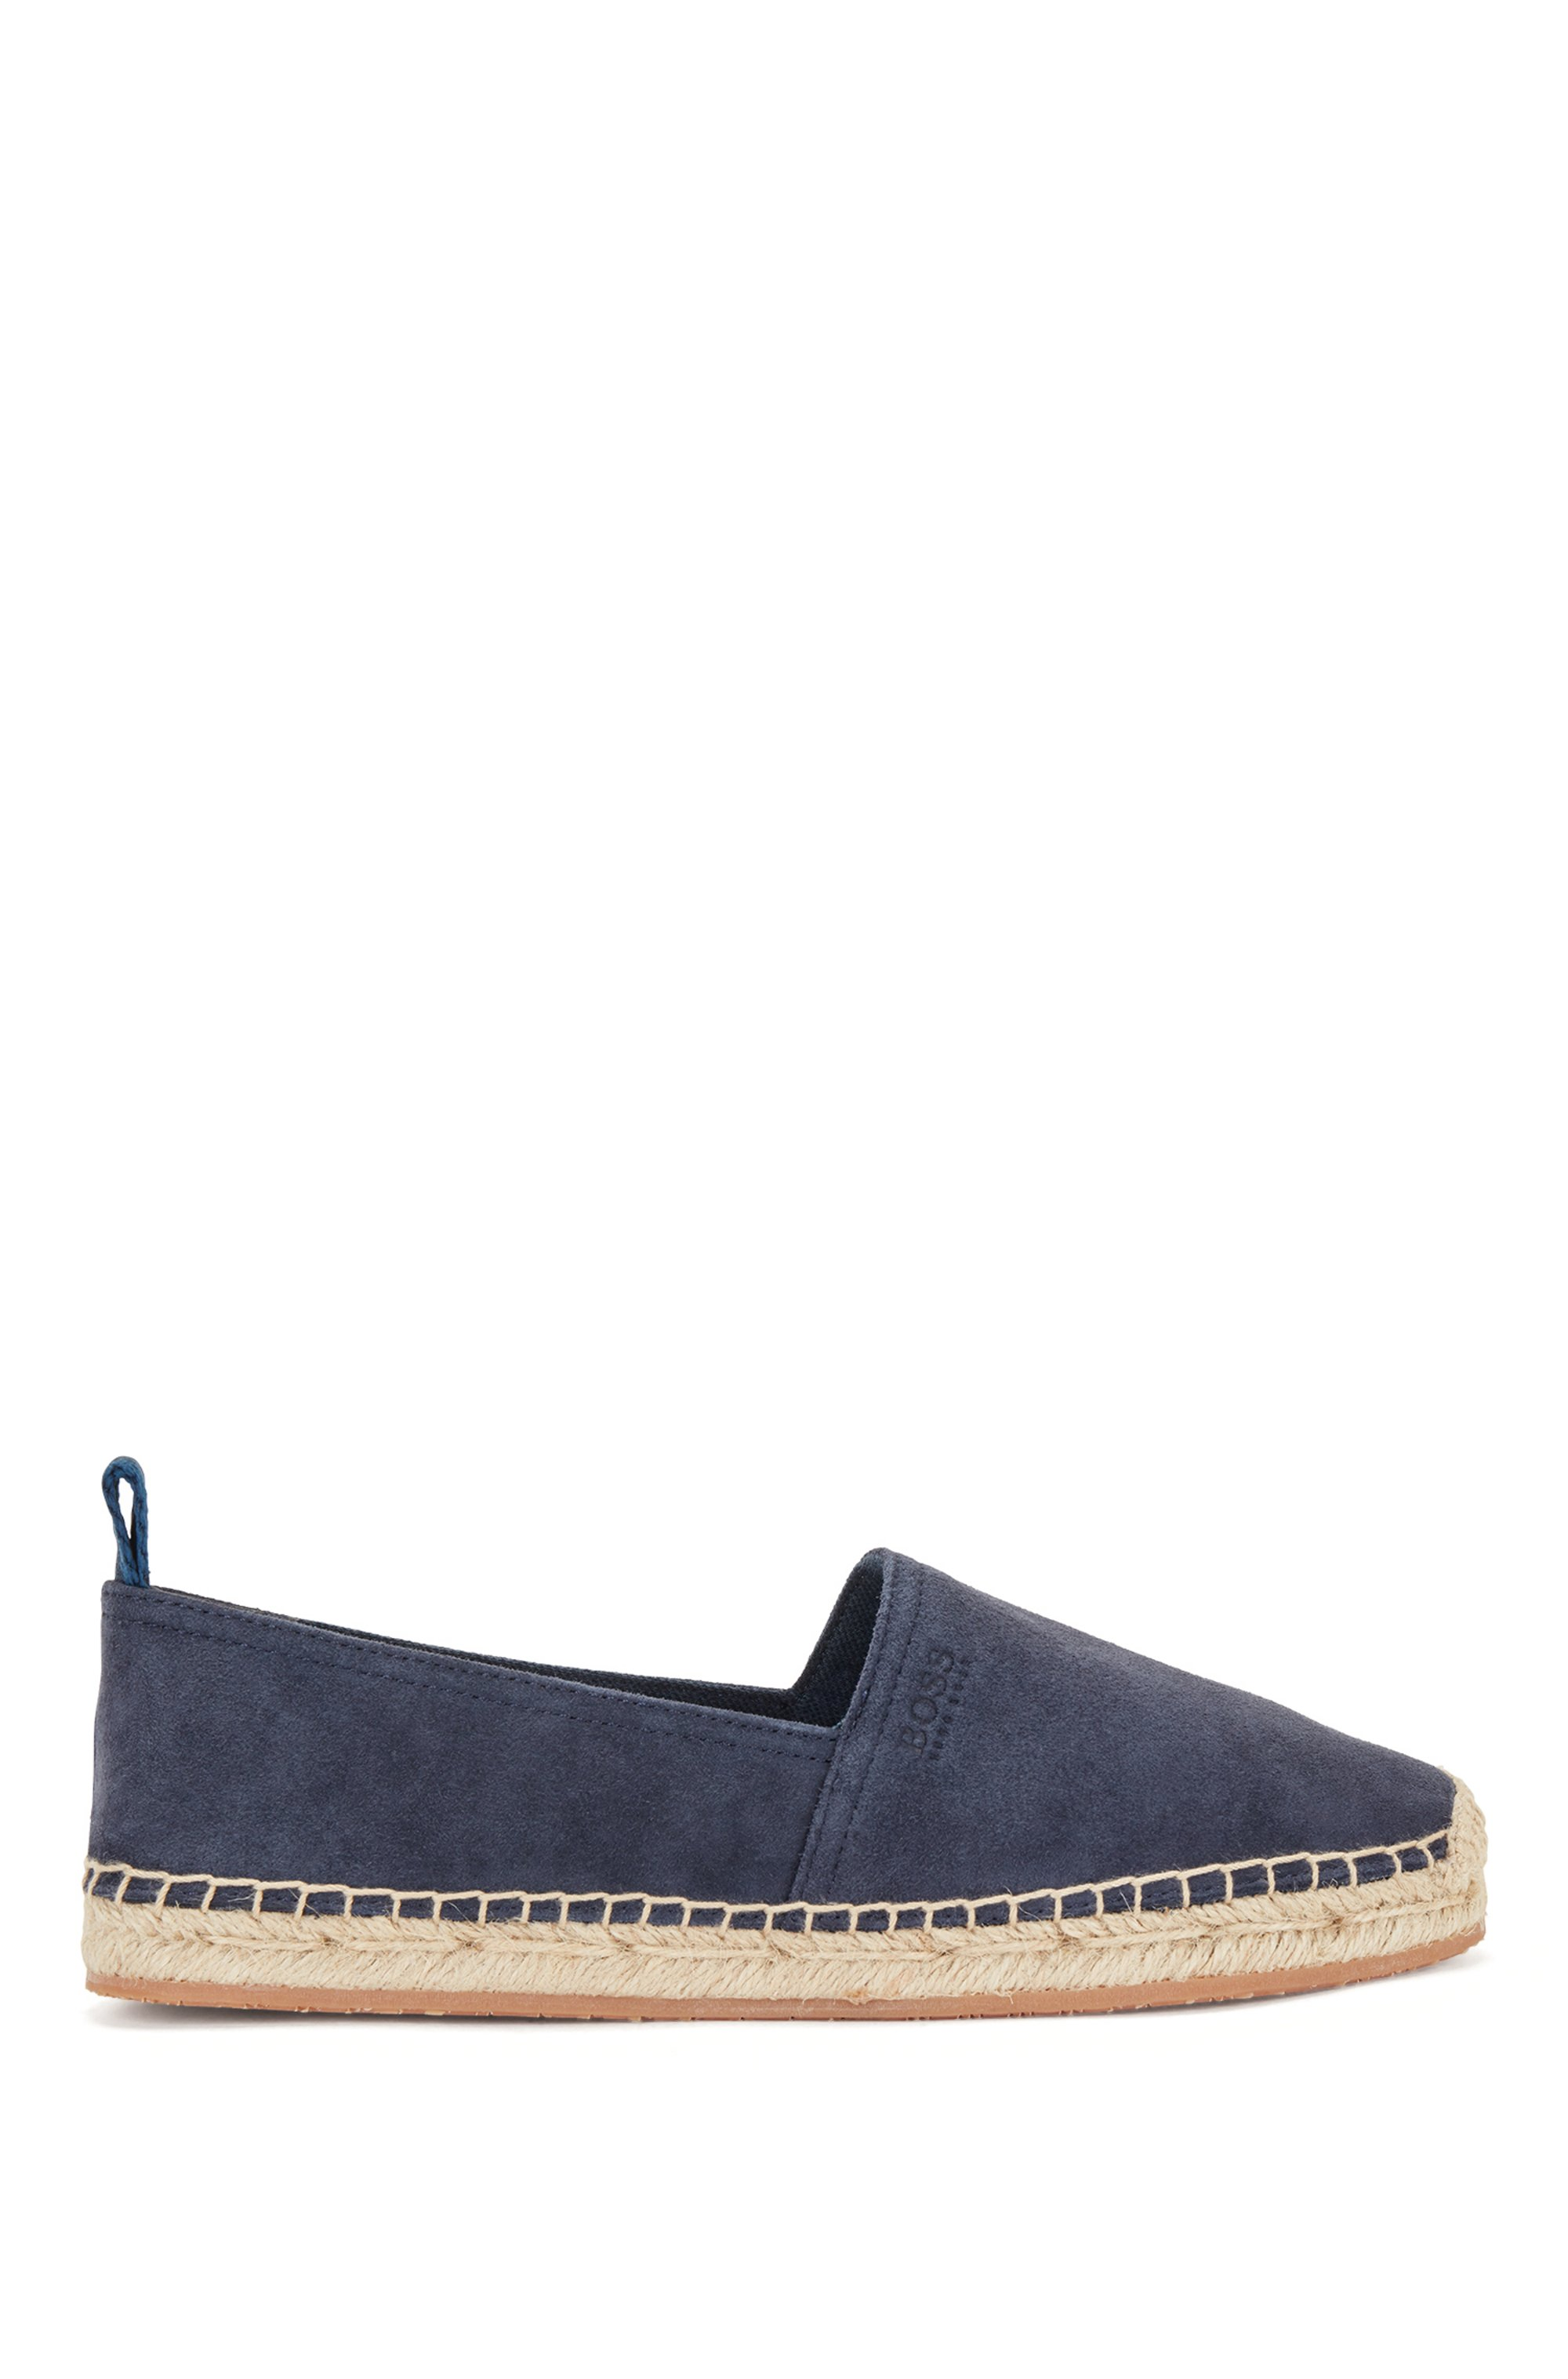 Suede espadrilles with rope-lined sole, Dark Blue